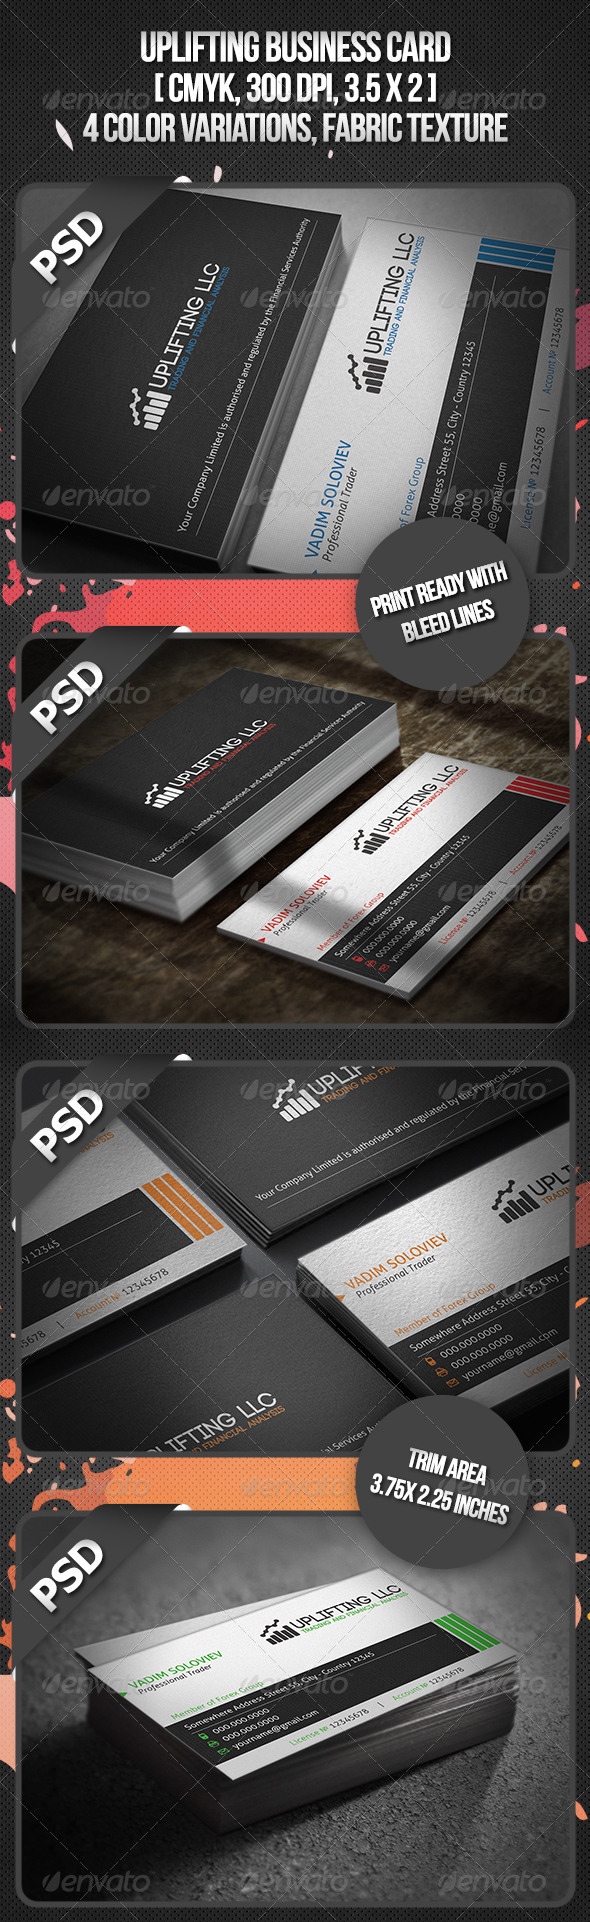 Uplifting Business Card - Business Cards Print Templates